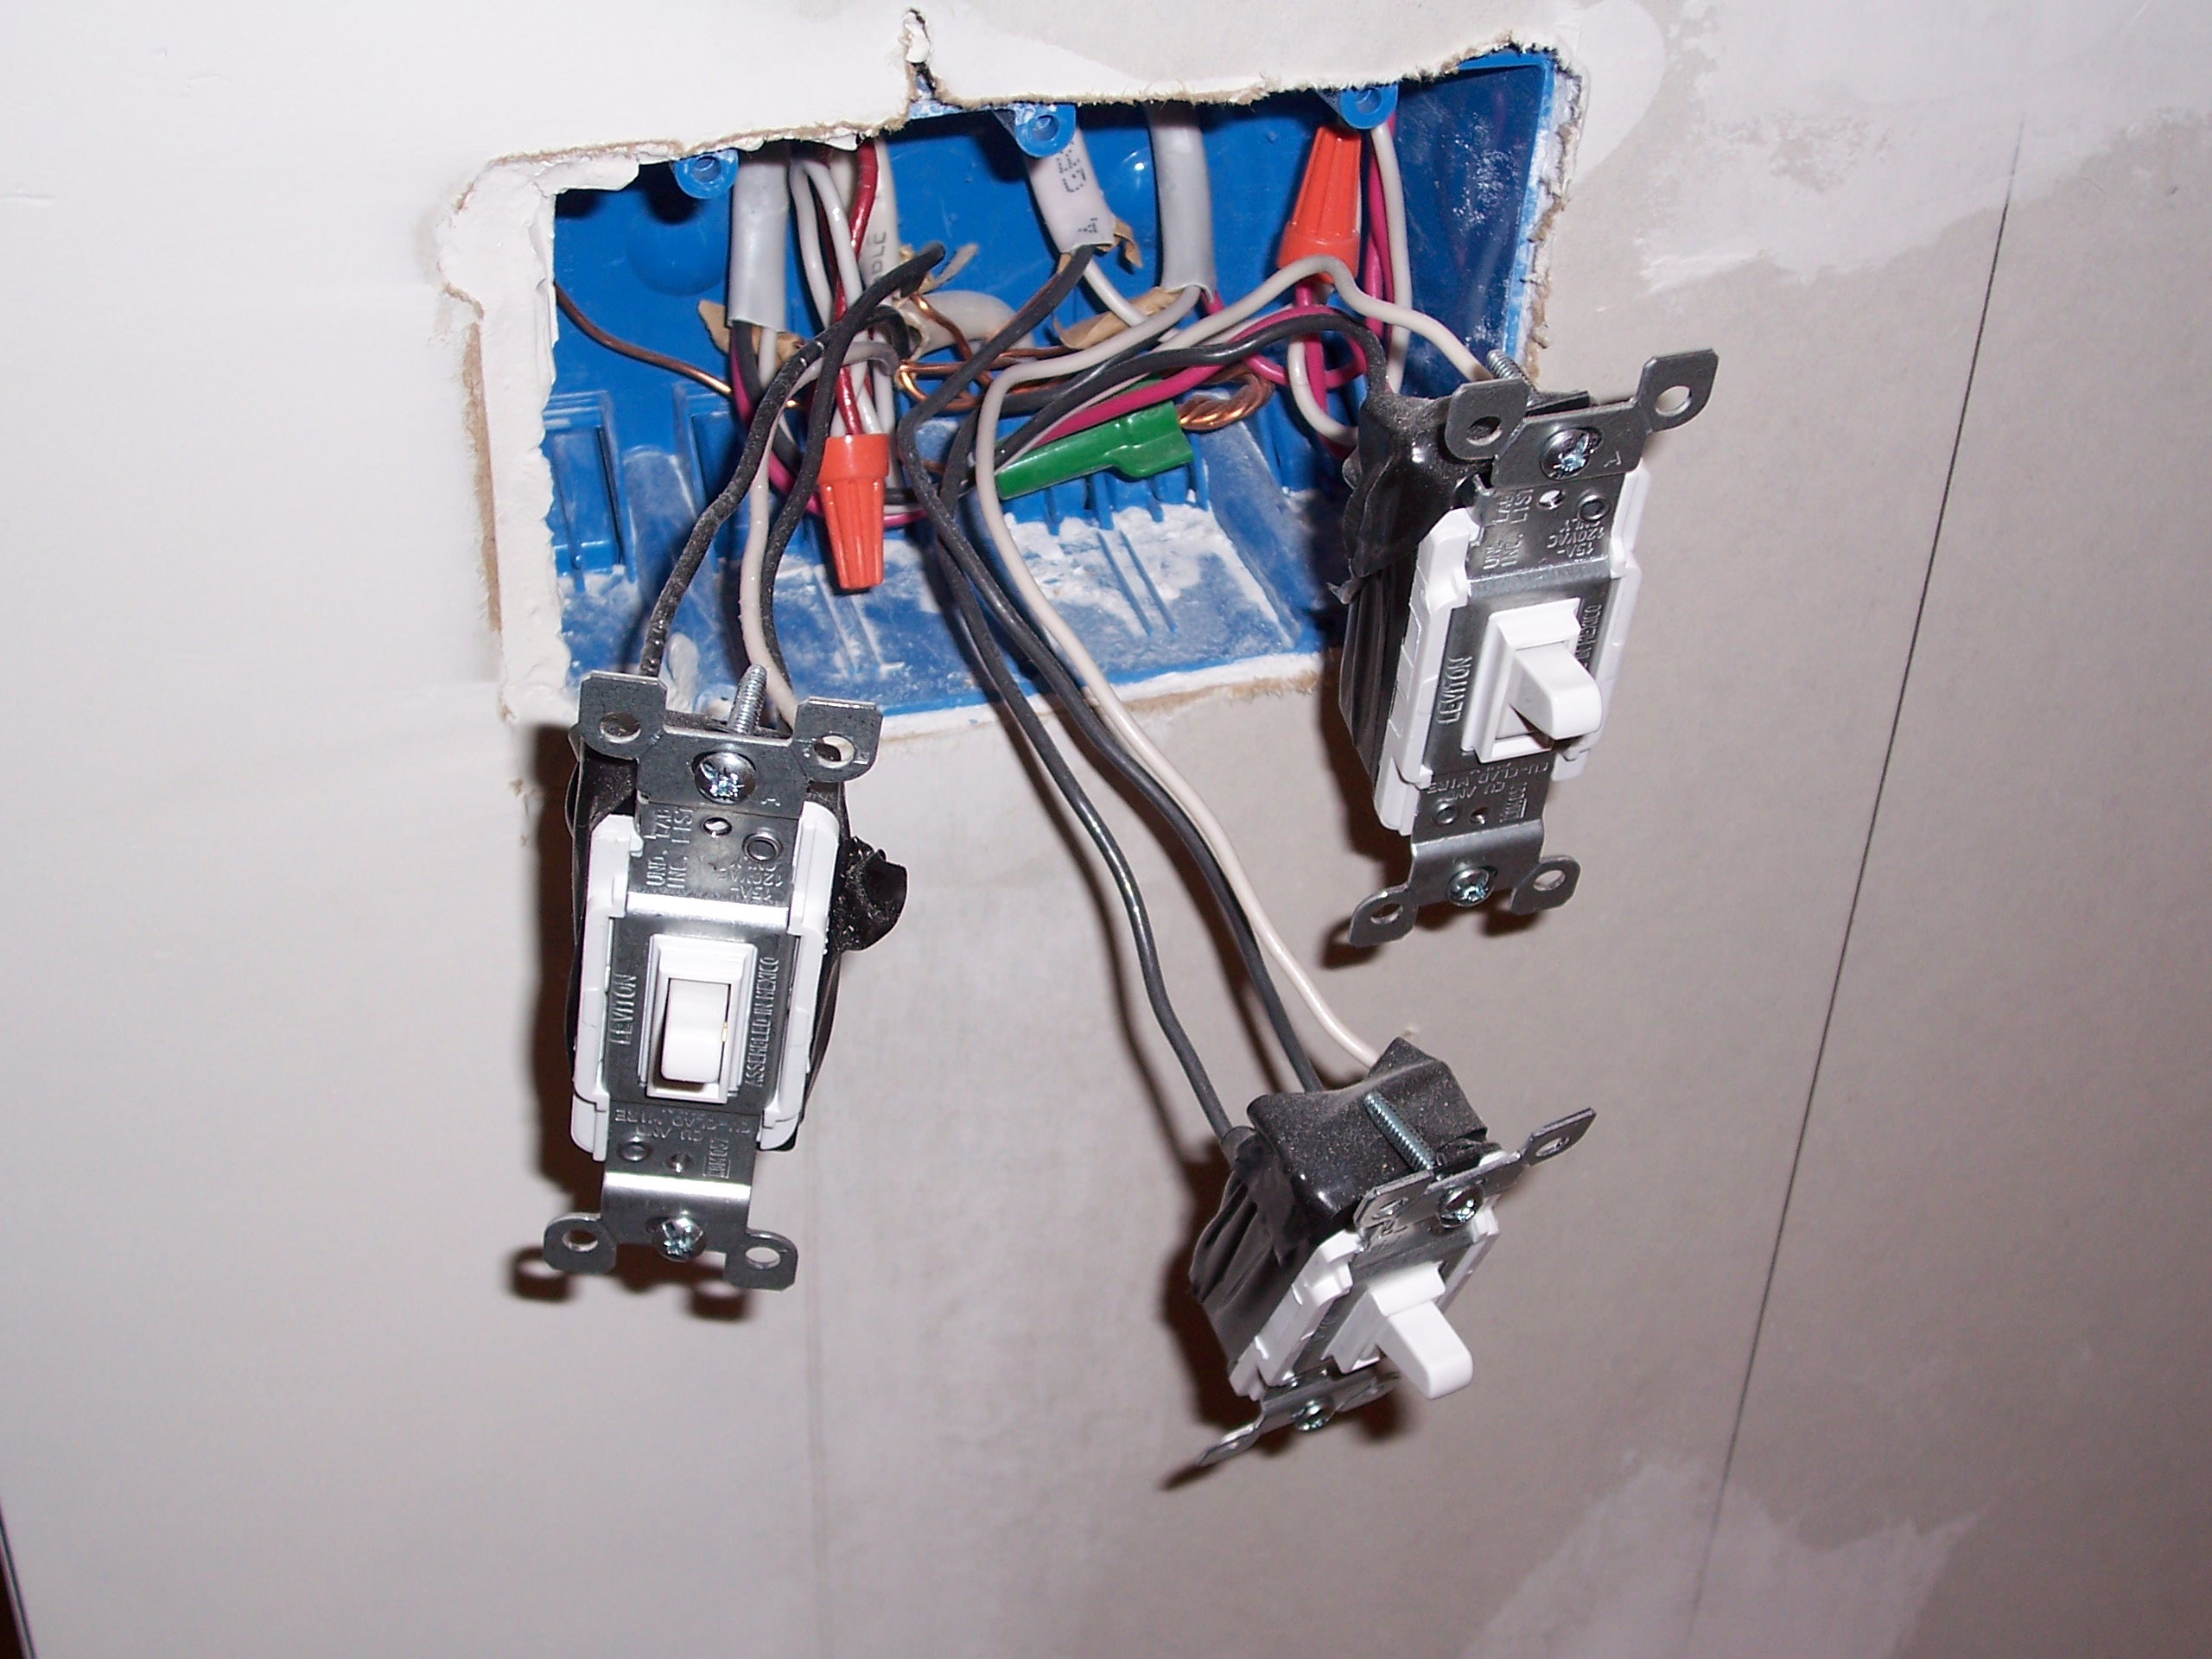 Filethree Light Switches With Exposed Wiring Wikimedia Commons Diagram 1 Switch 3 Lights